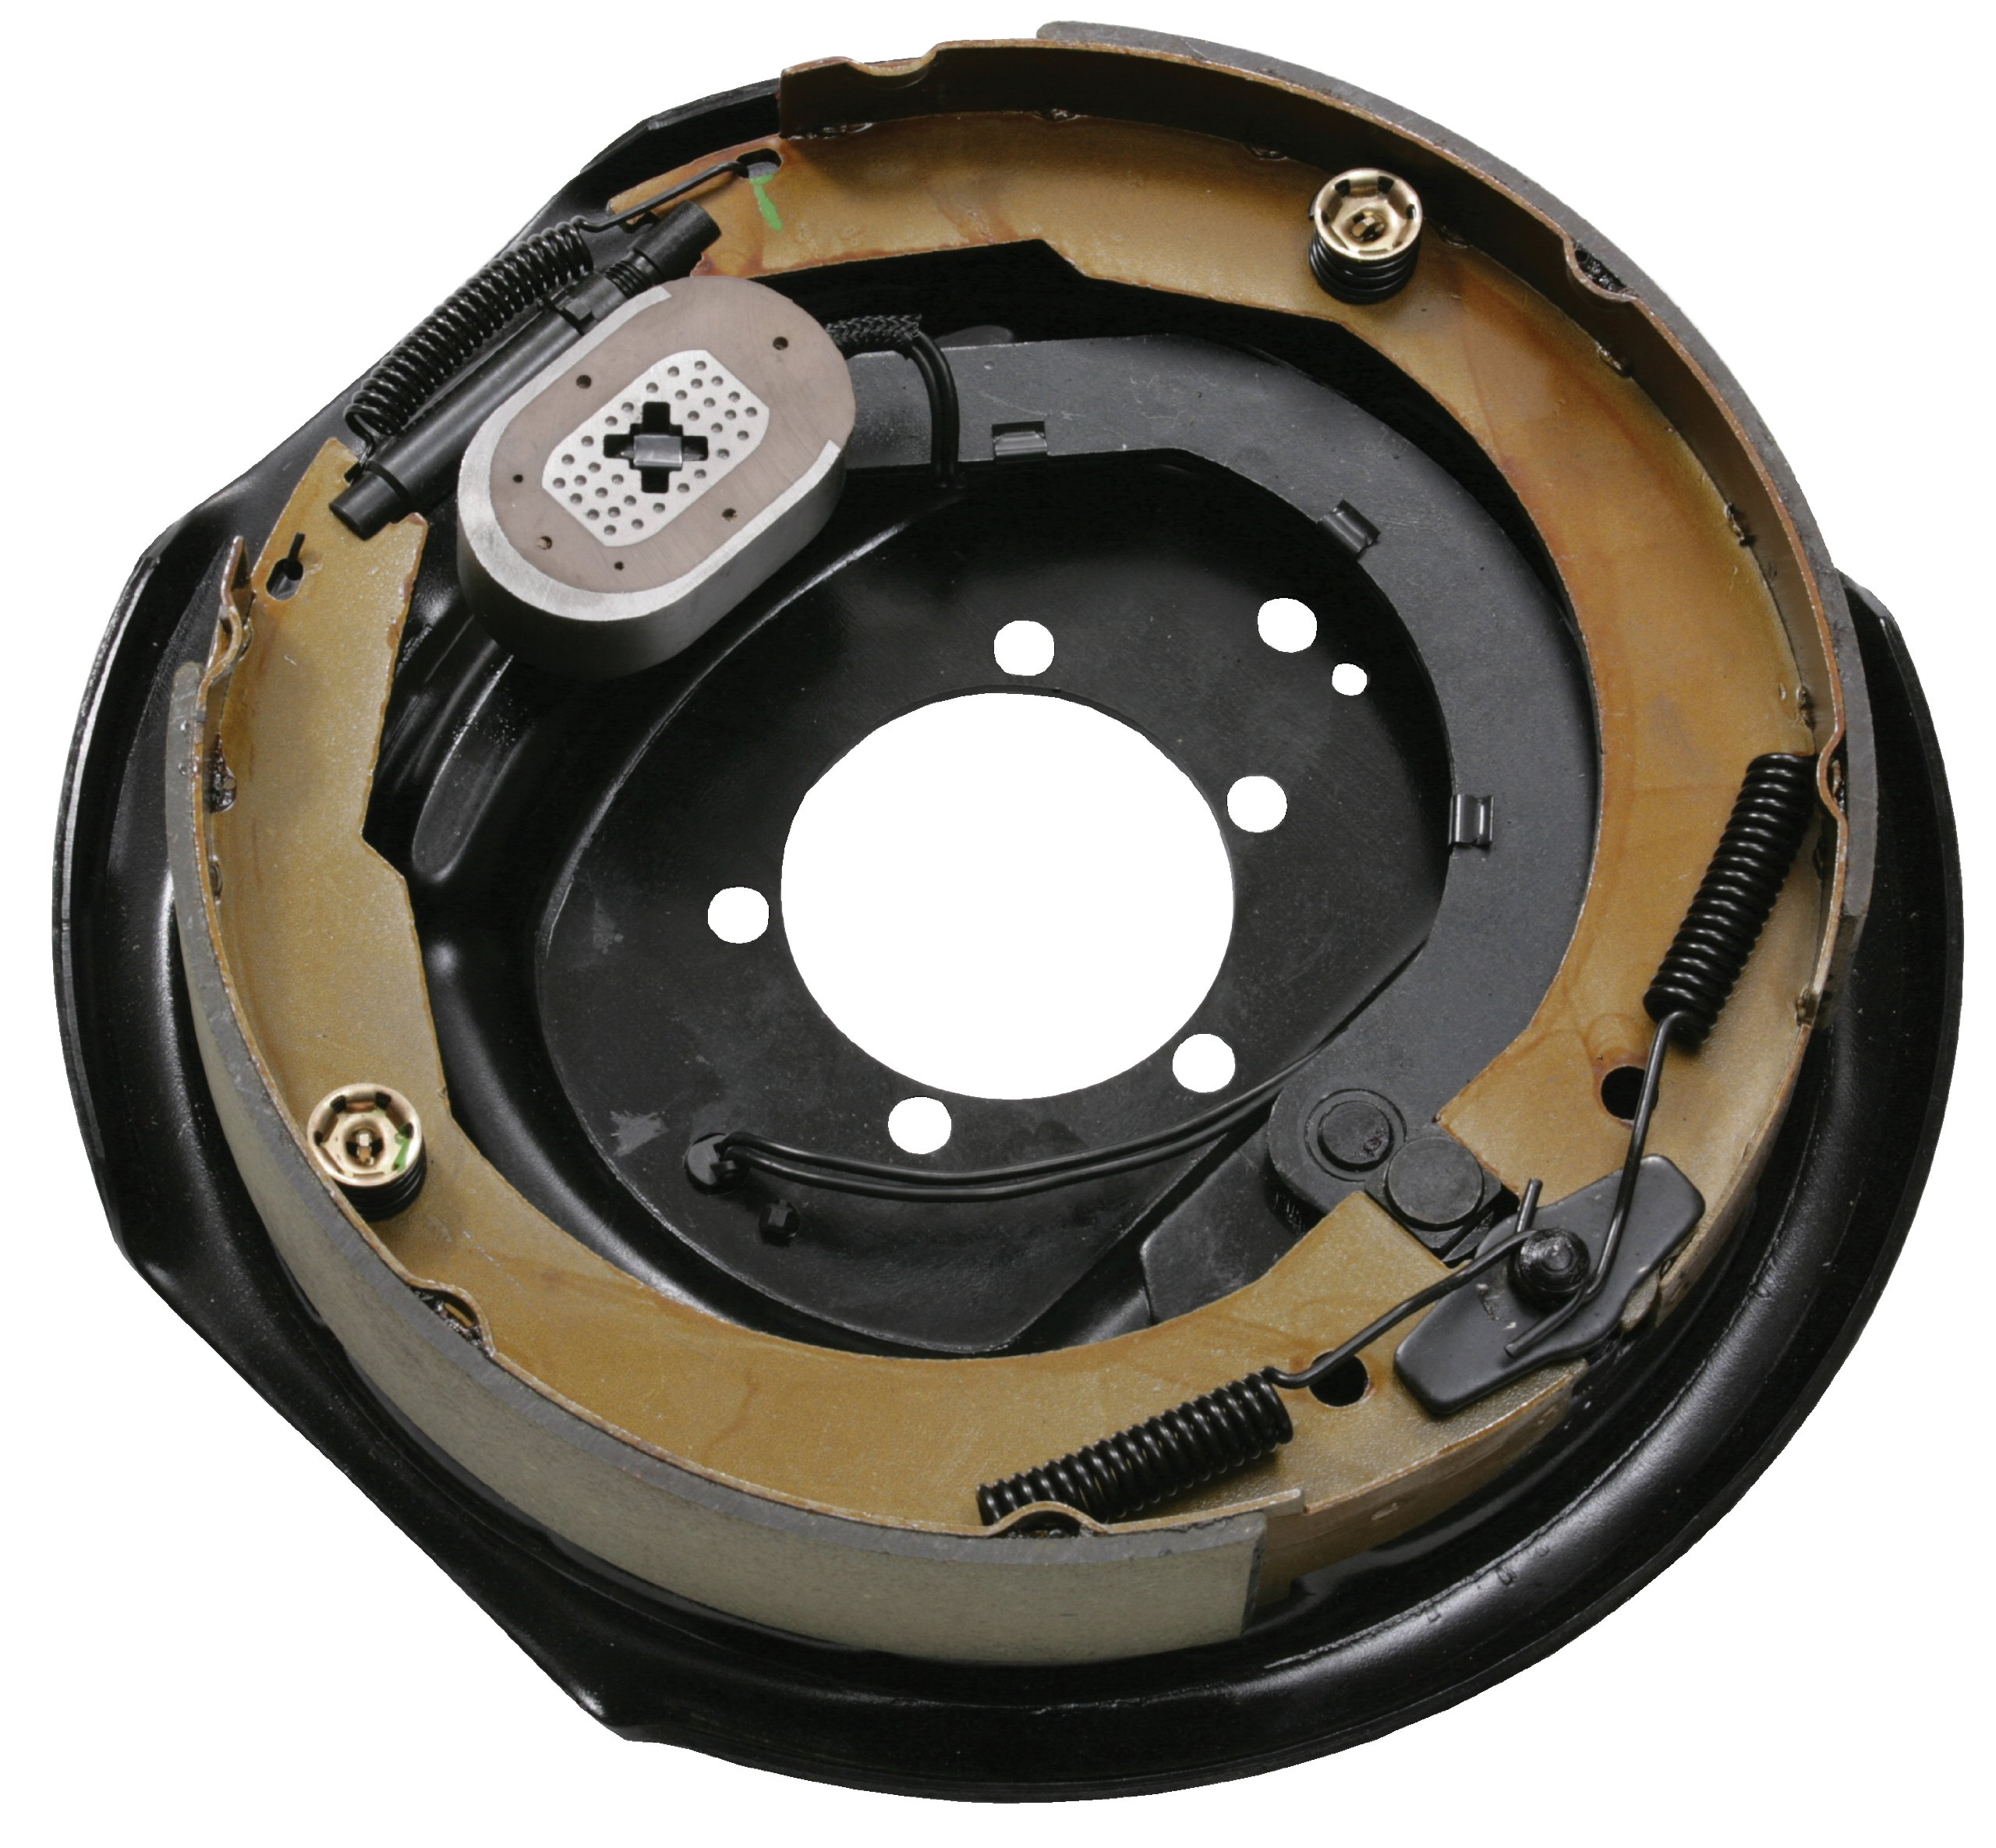 Husky 30798 12'' x 2'' Right Handed Electric Brake Assembly - 7000 lbs. Load Capacity